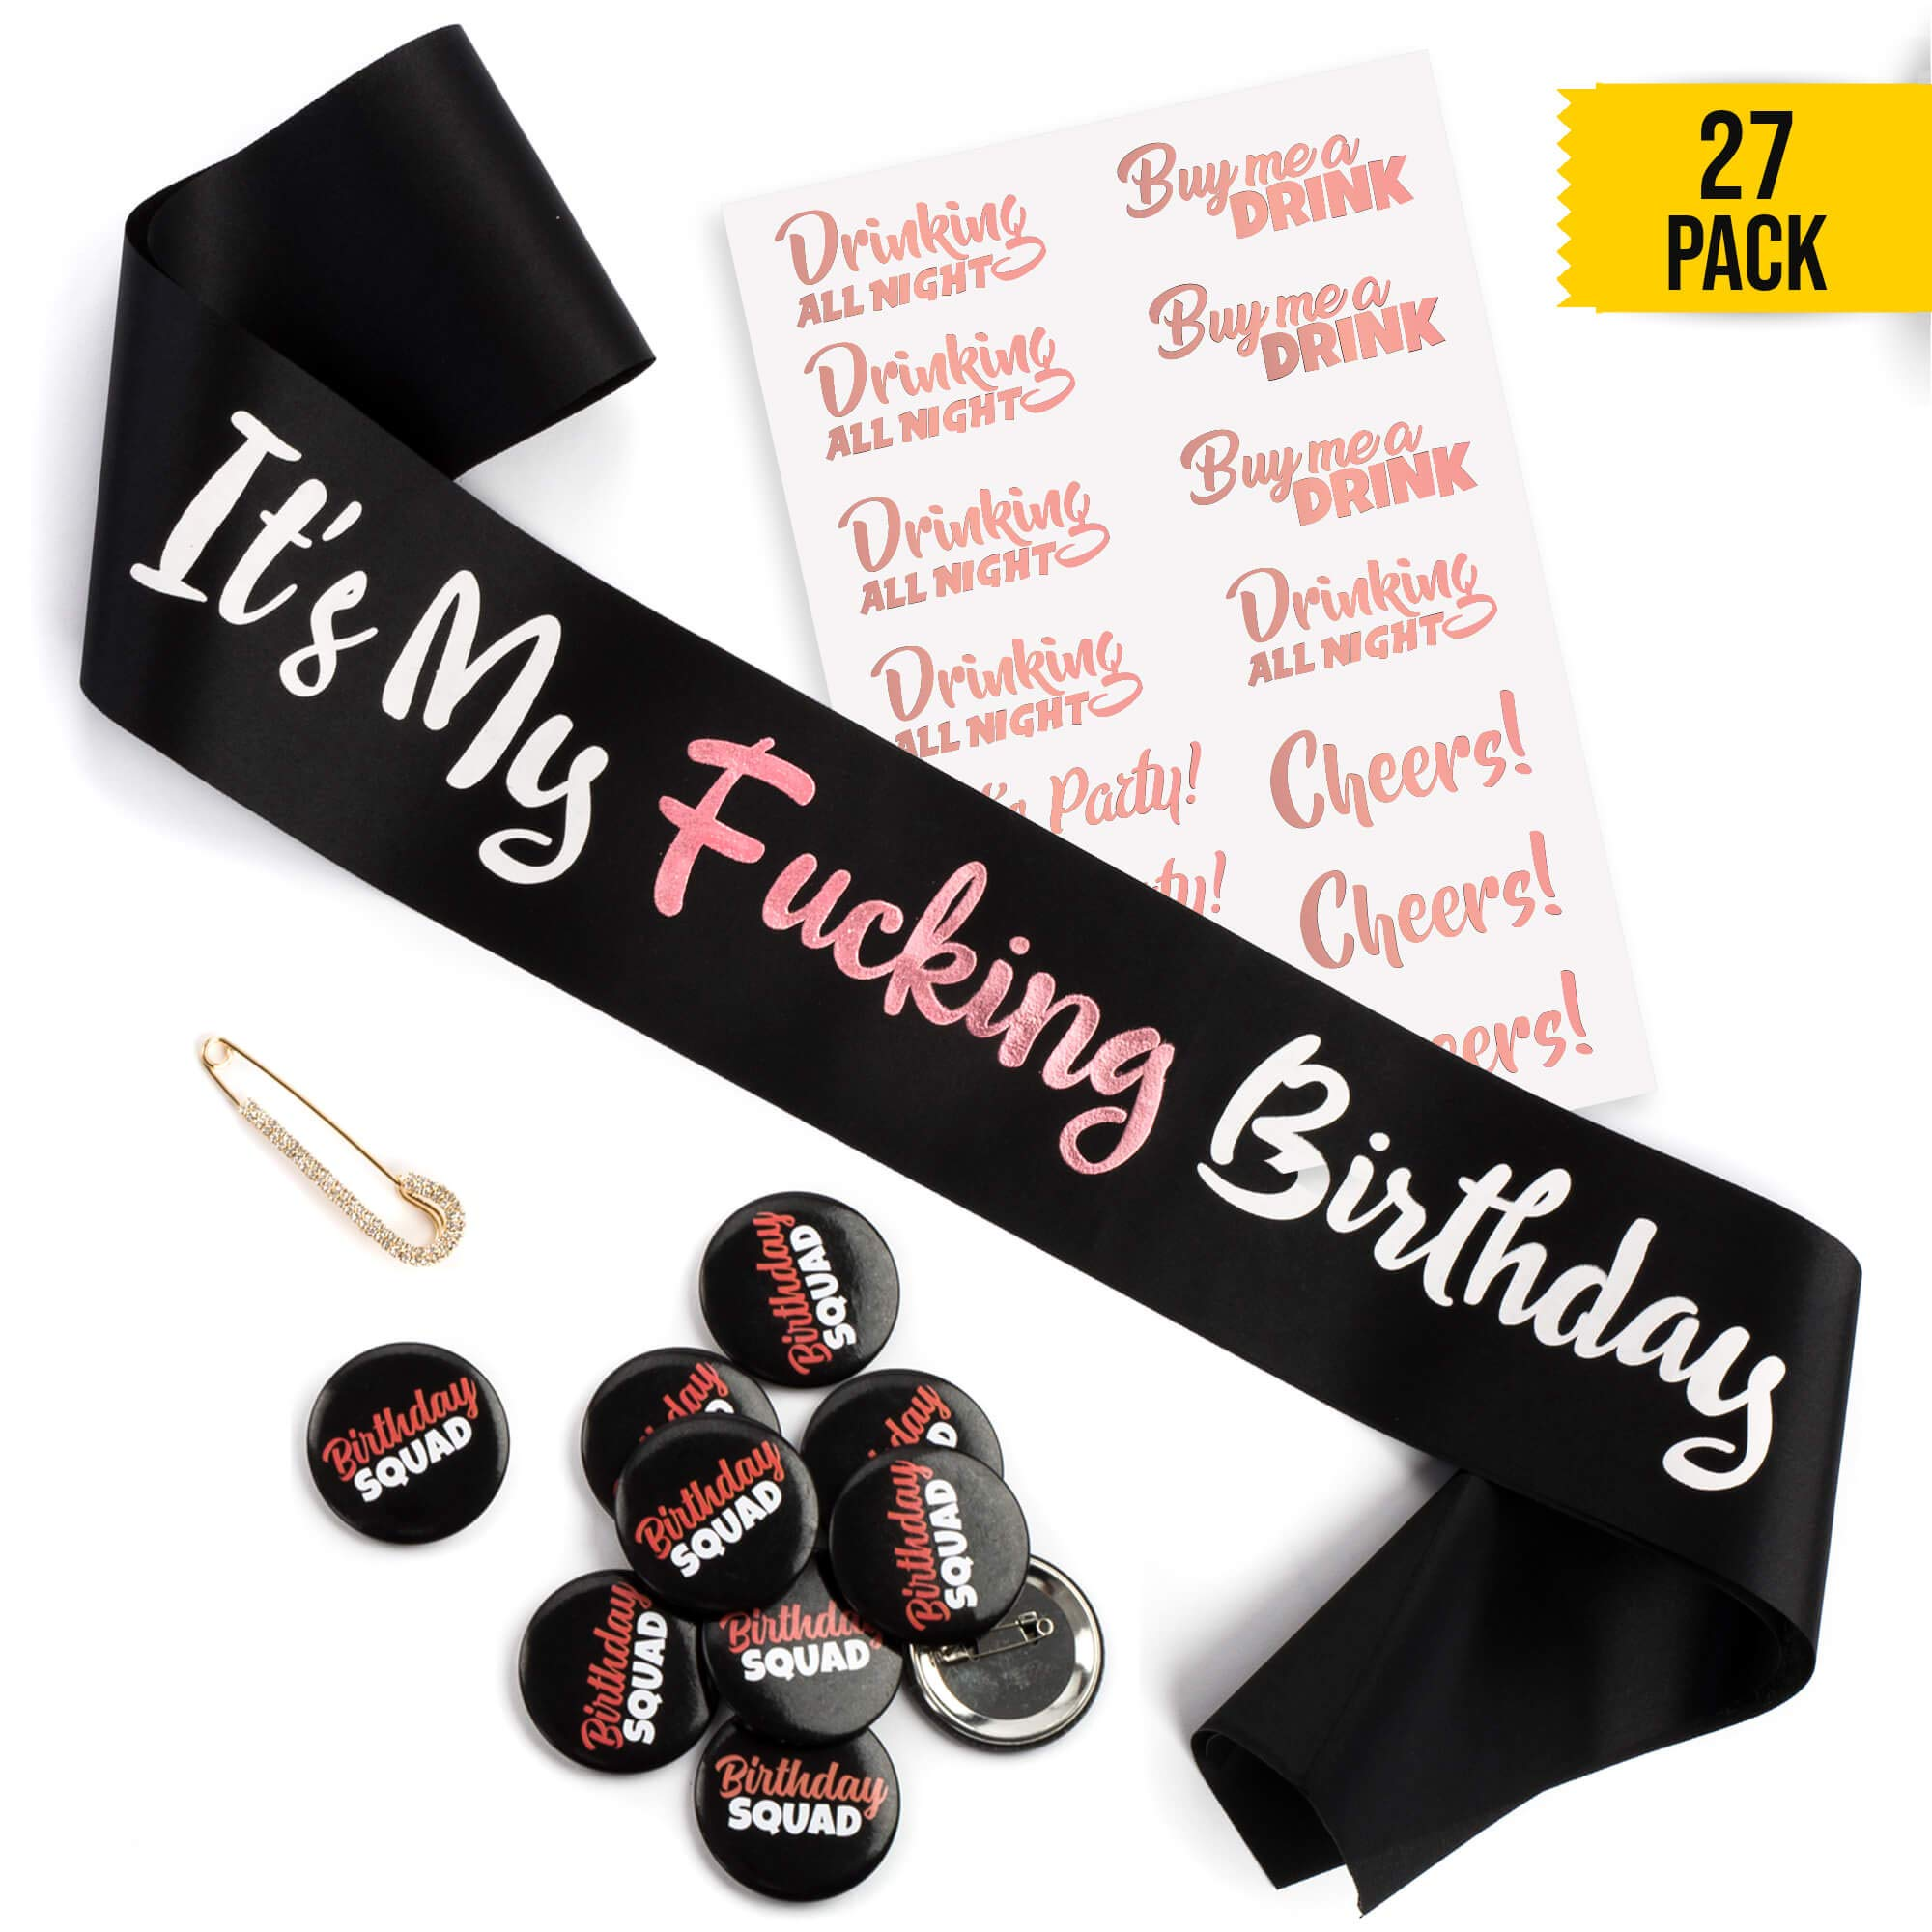 CORRURE Birthday Sash, Buttons and Tattoos Set - Complete Rose Gold Birthday Kit for The Most Amazing Party with Your Squad - Funny Party Favors, Supplies for Your 21st, 25th, 30th or Any Other Bday